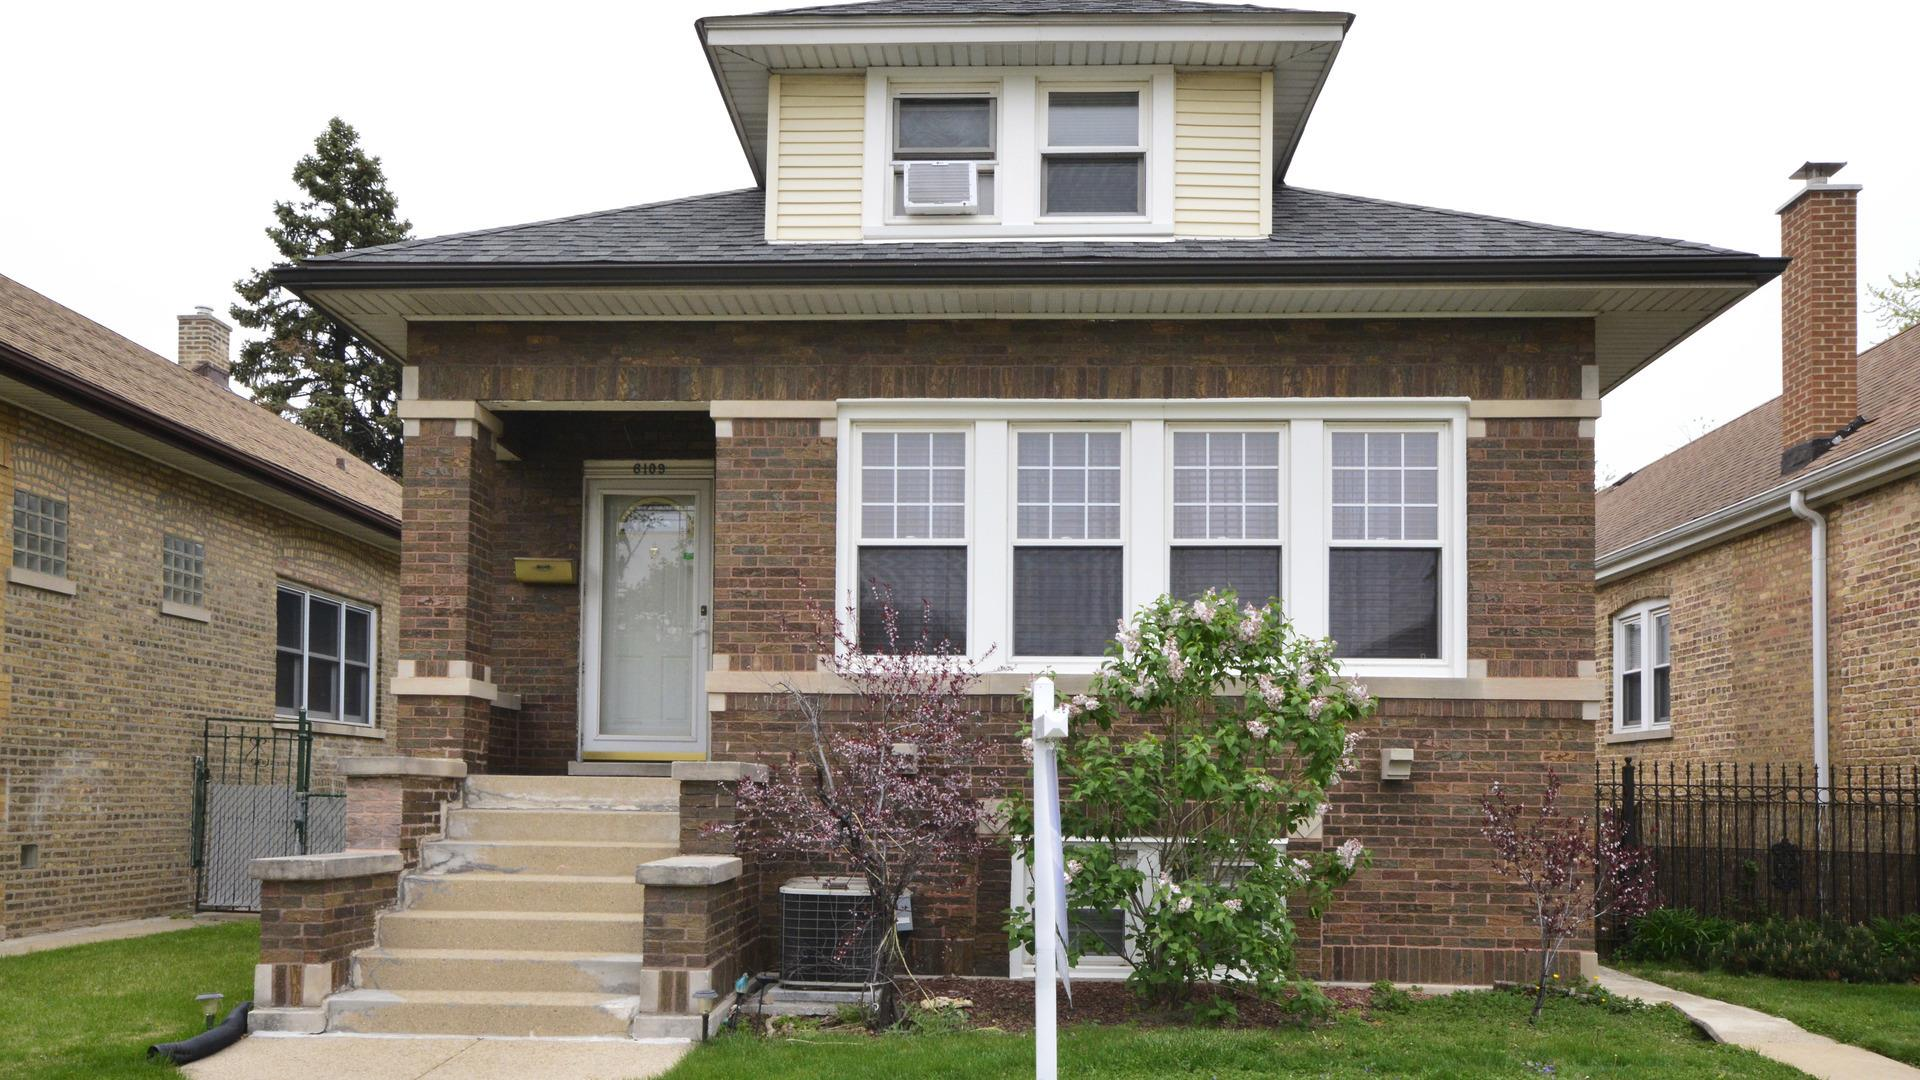 6109 N Nagle Avenue, Chicago, IL 60646 - #: 11070716